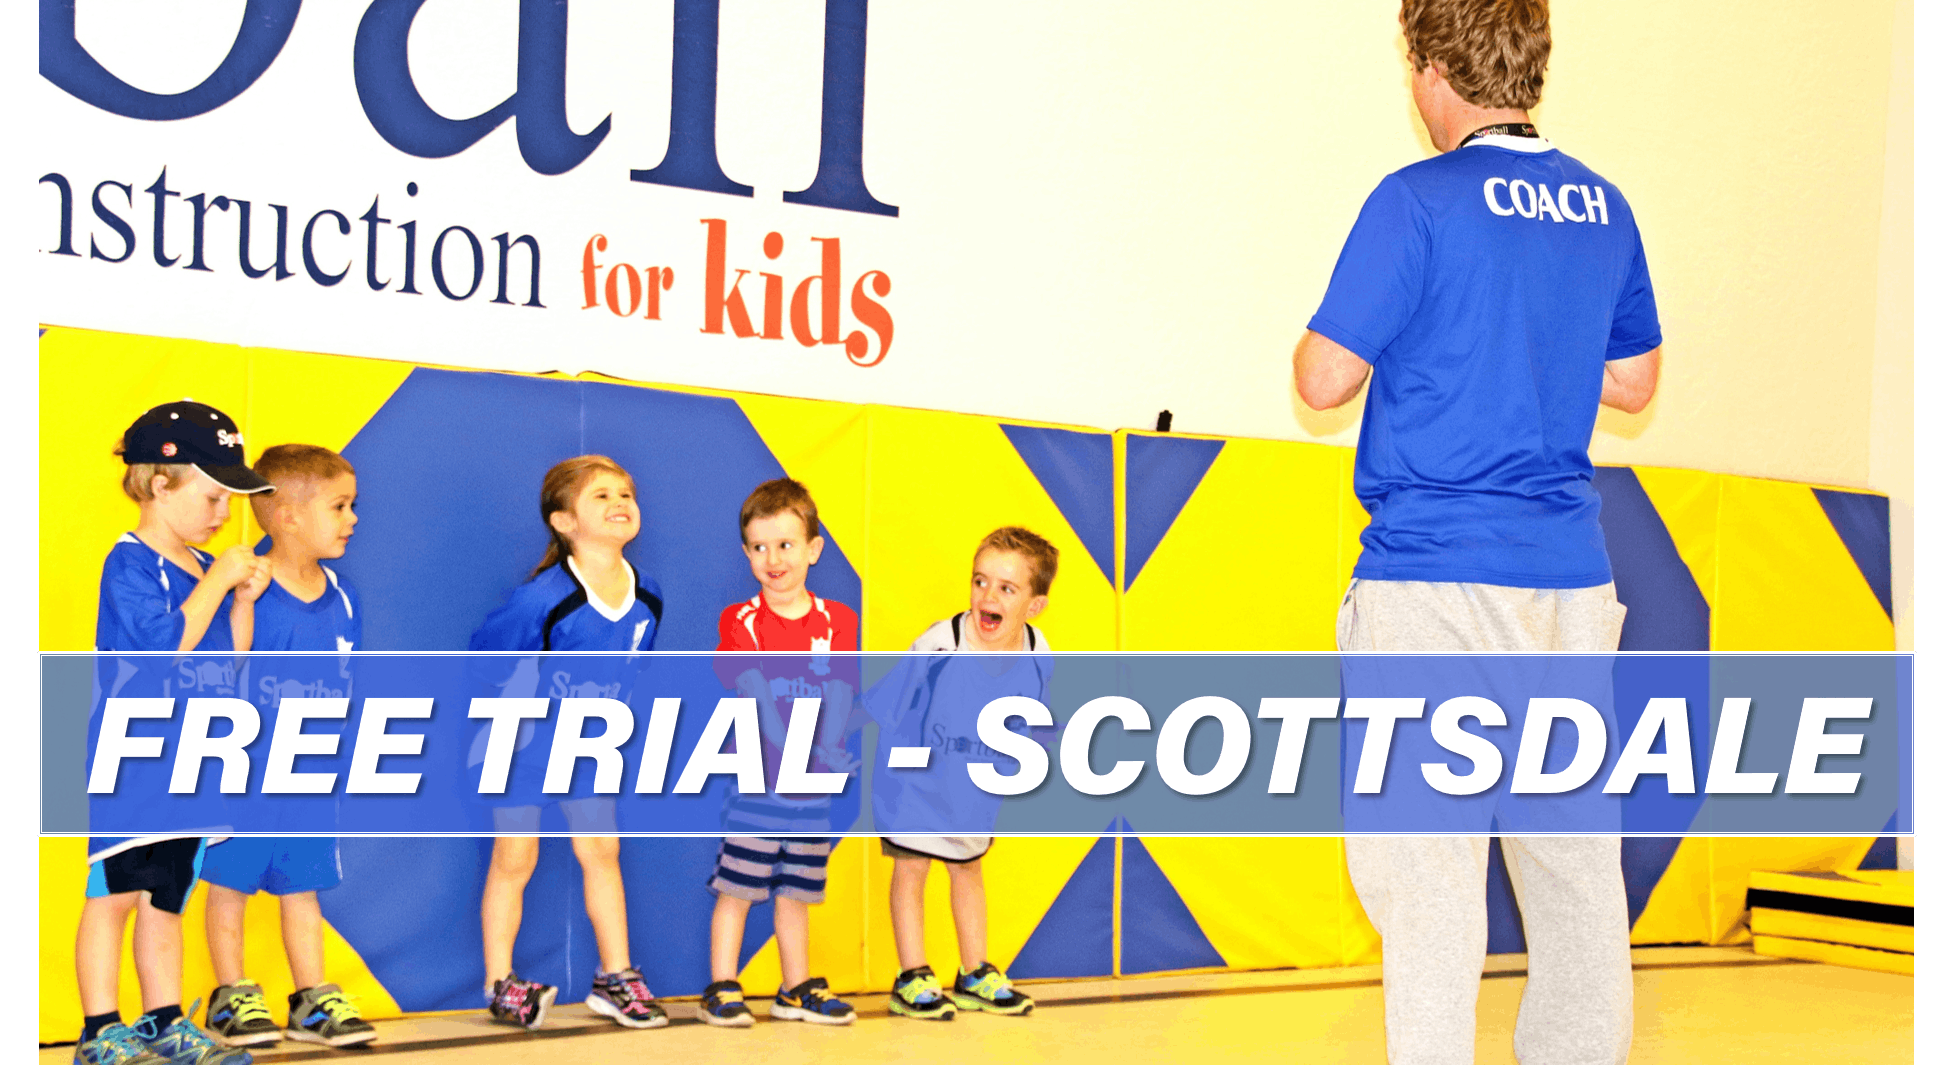 FREE TRIAL - Sportball Scottsdale - ages 16 months - 5yrs